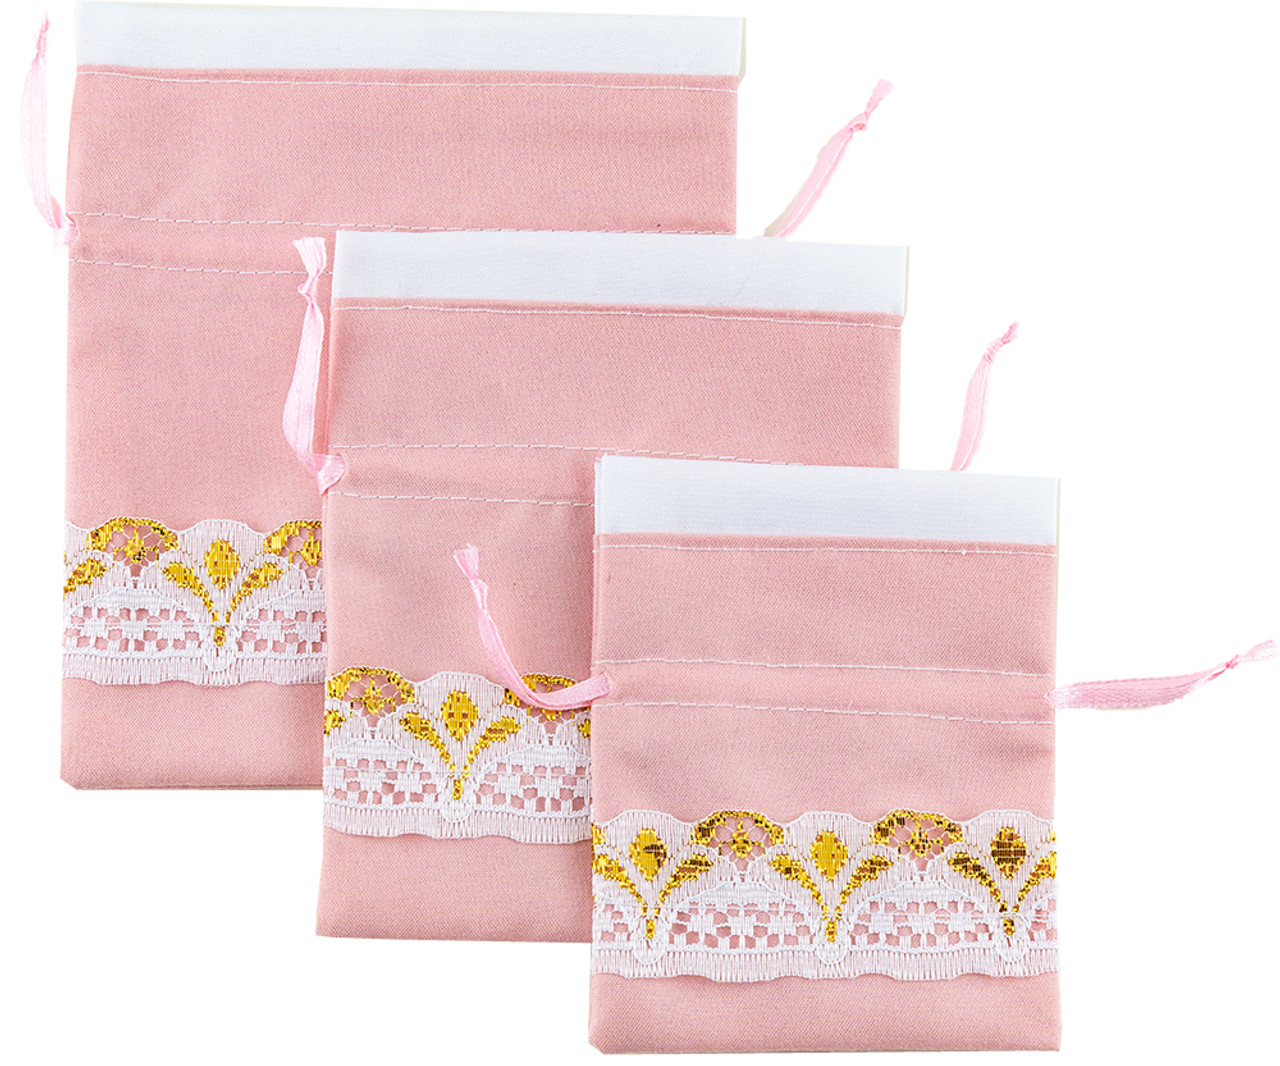 PCH-007 Drawstring Pouch: Pink/White & Gold Lace